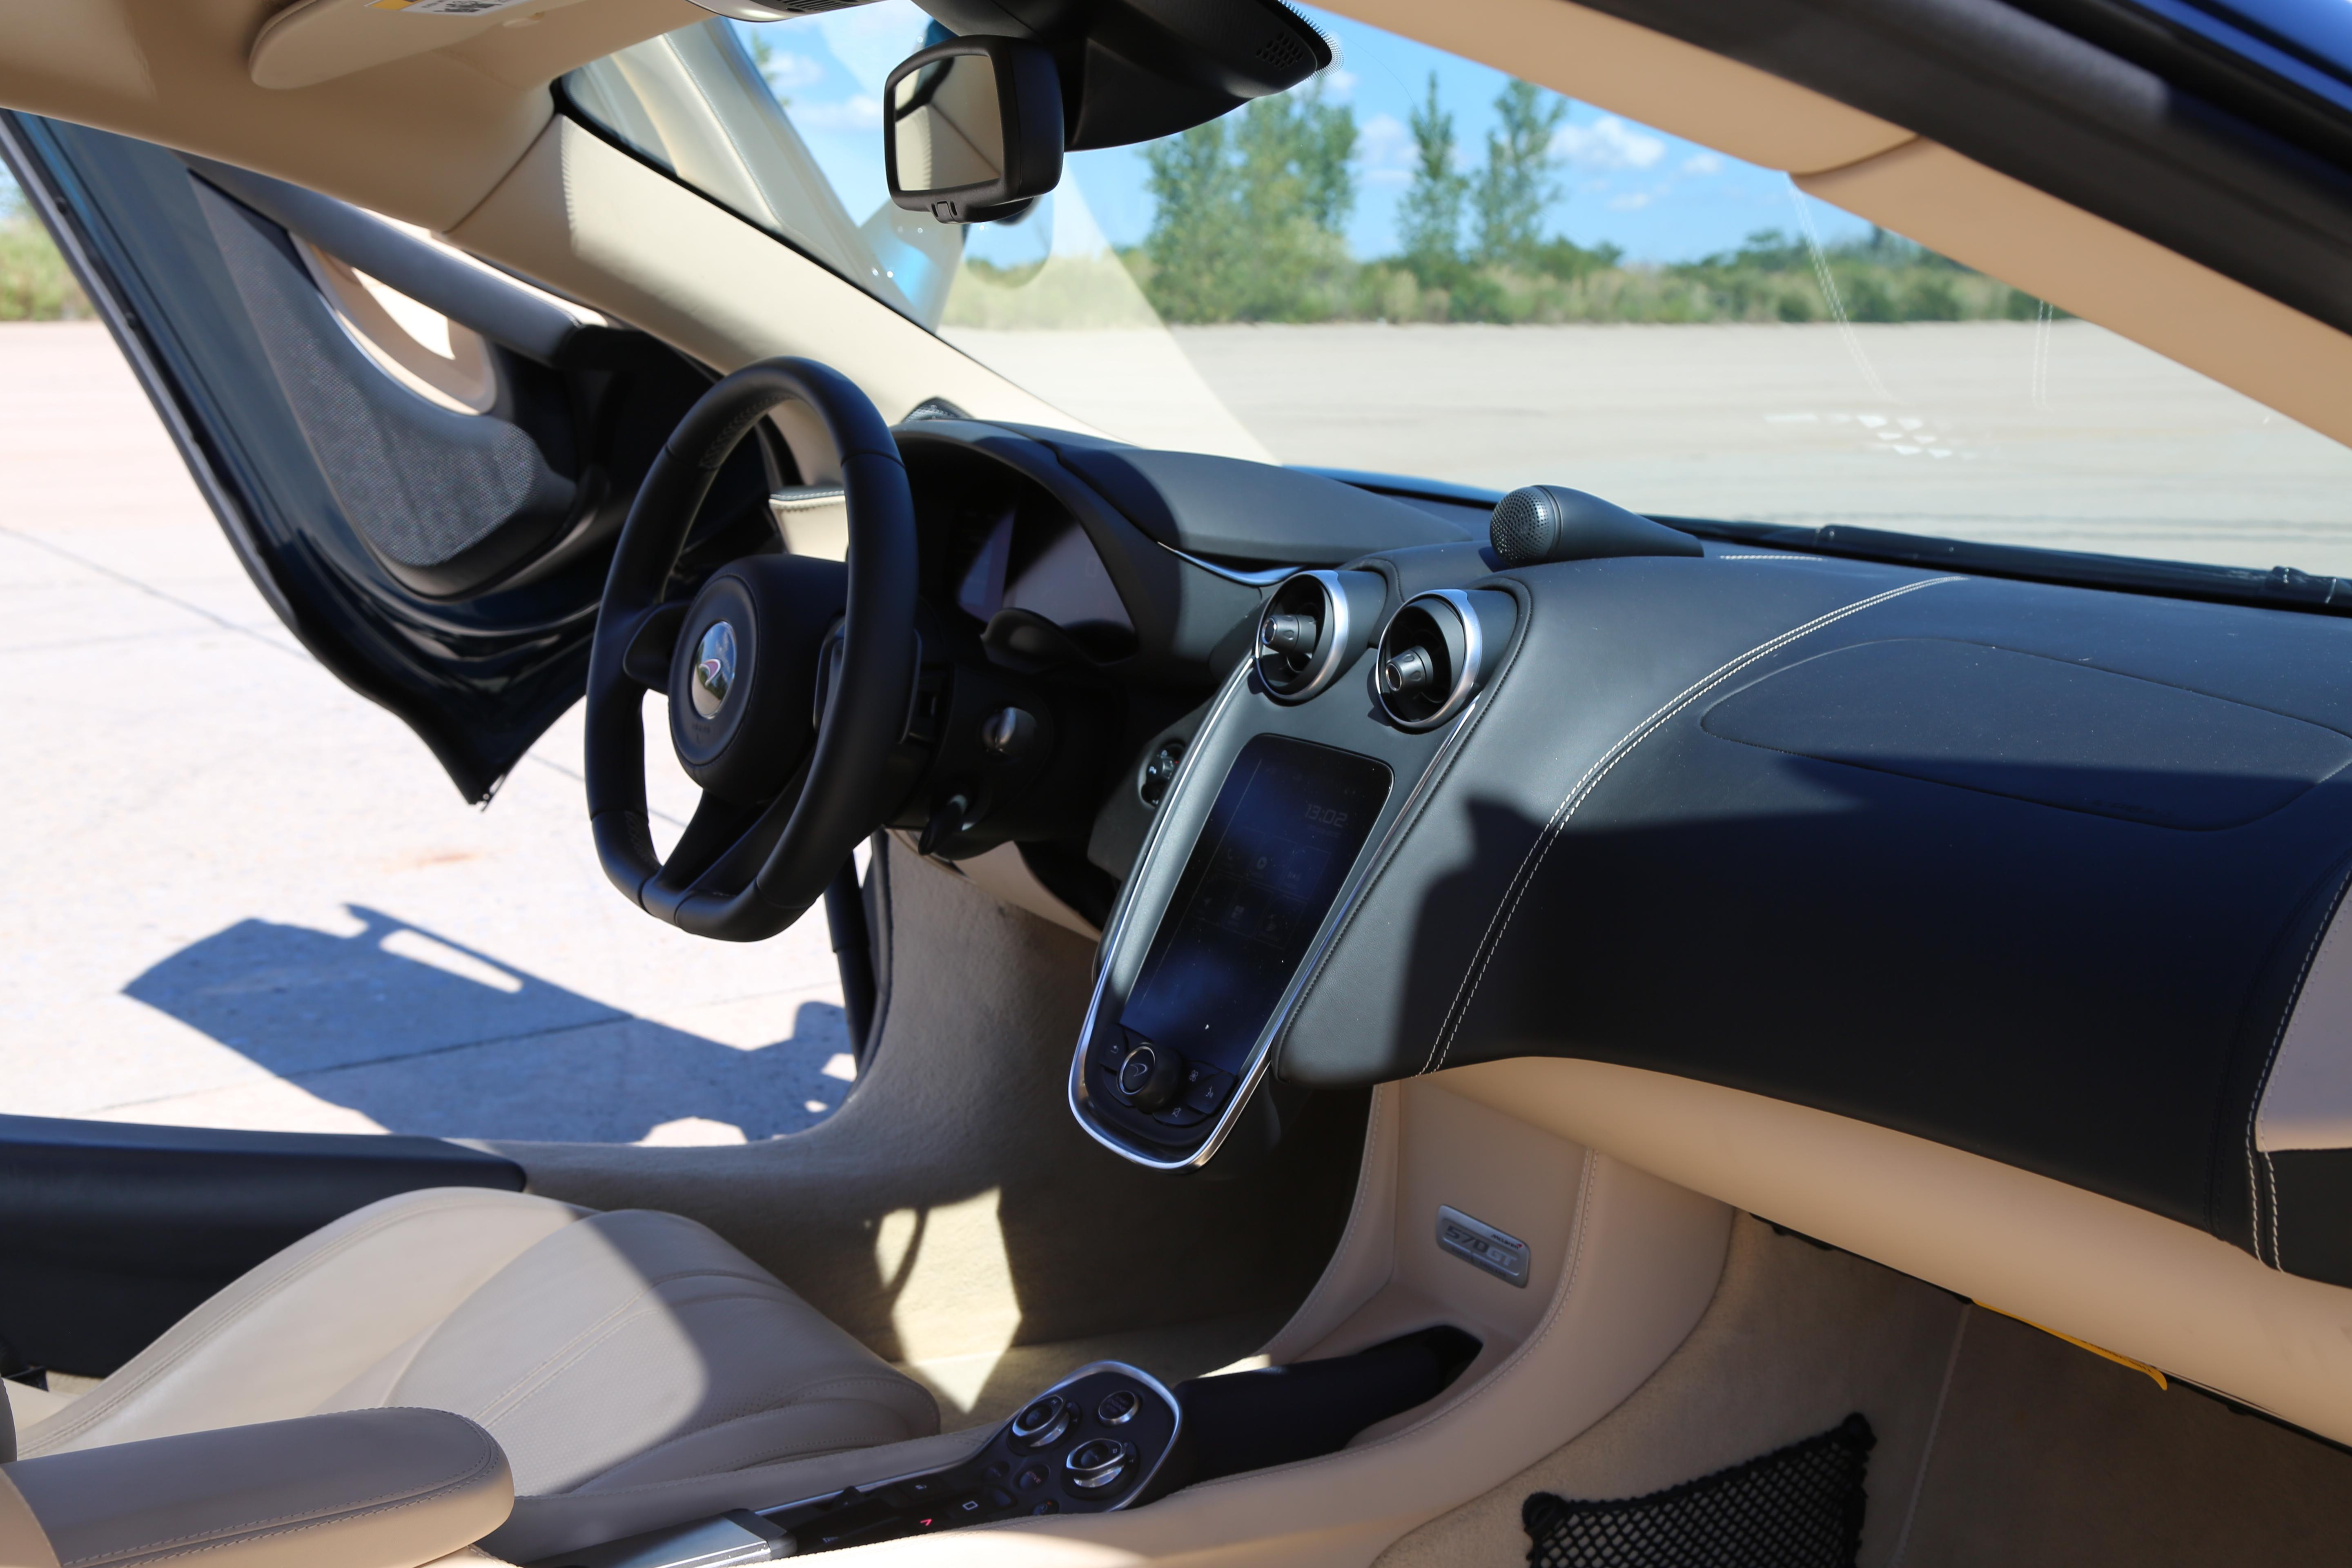 Mclaren 570 Gt Review The Comfier Softer Supercar From